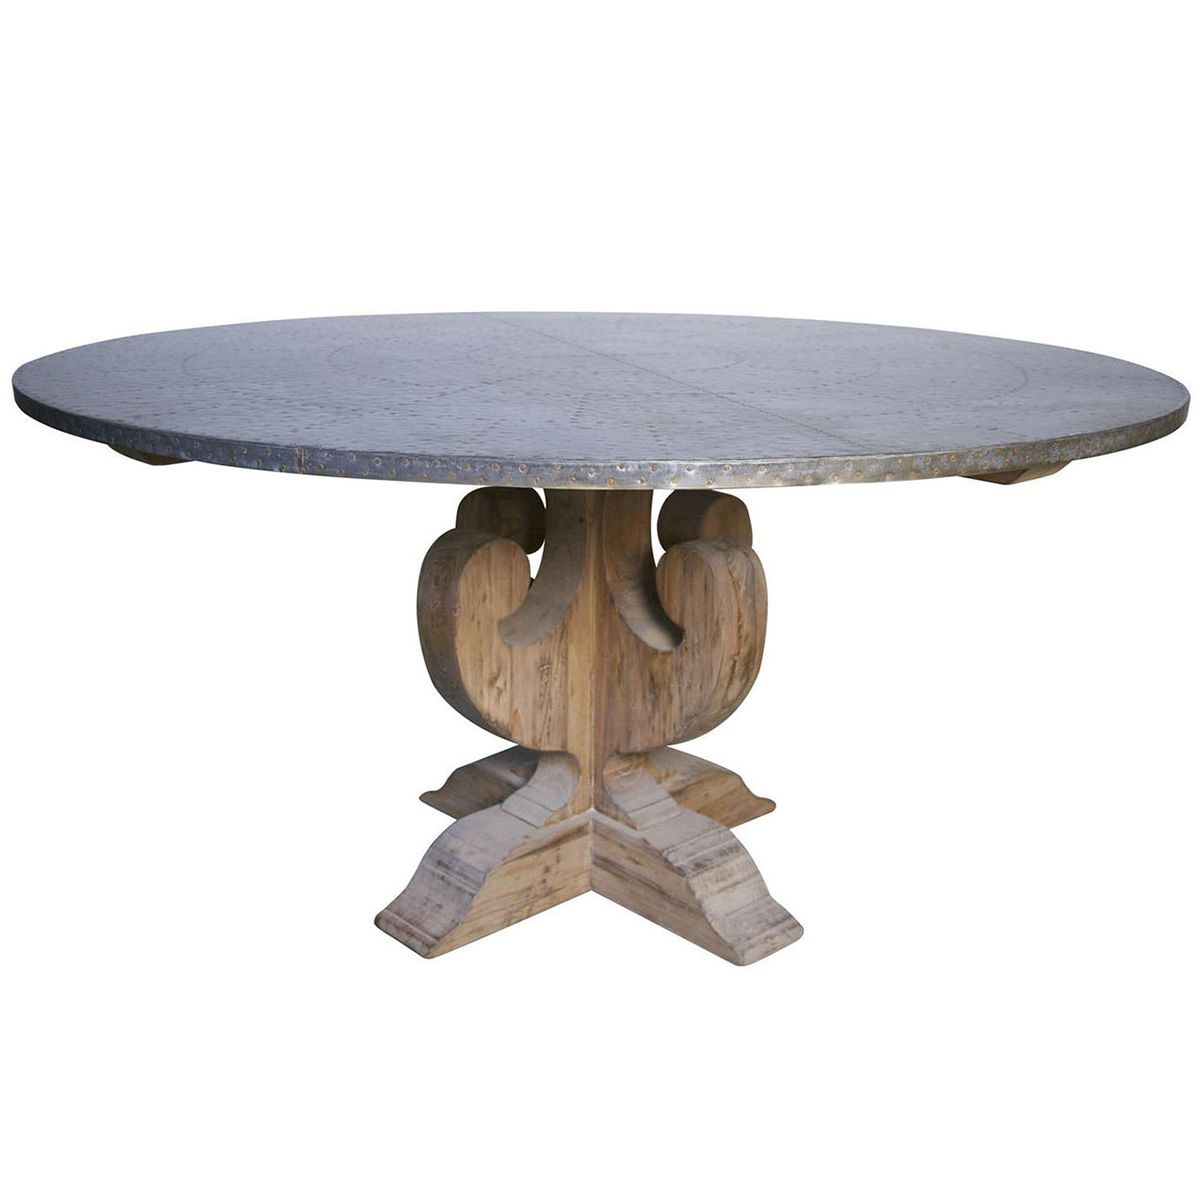 Cheap Studio Apartments Reno: Round Dining Table, Dining Table